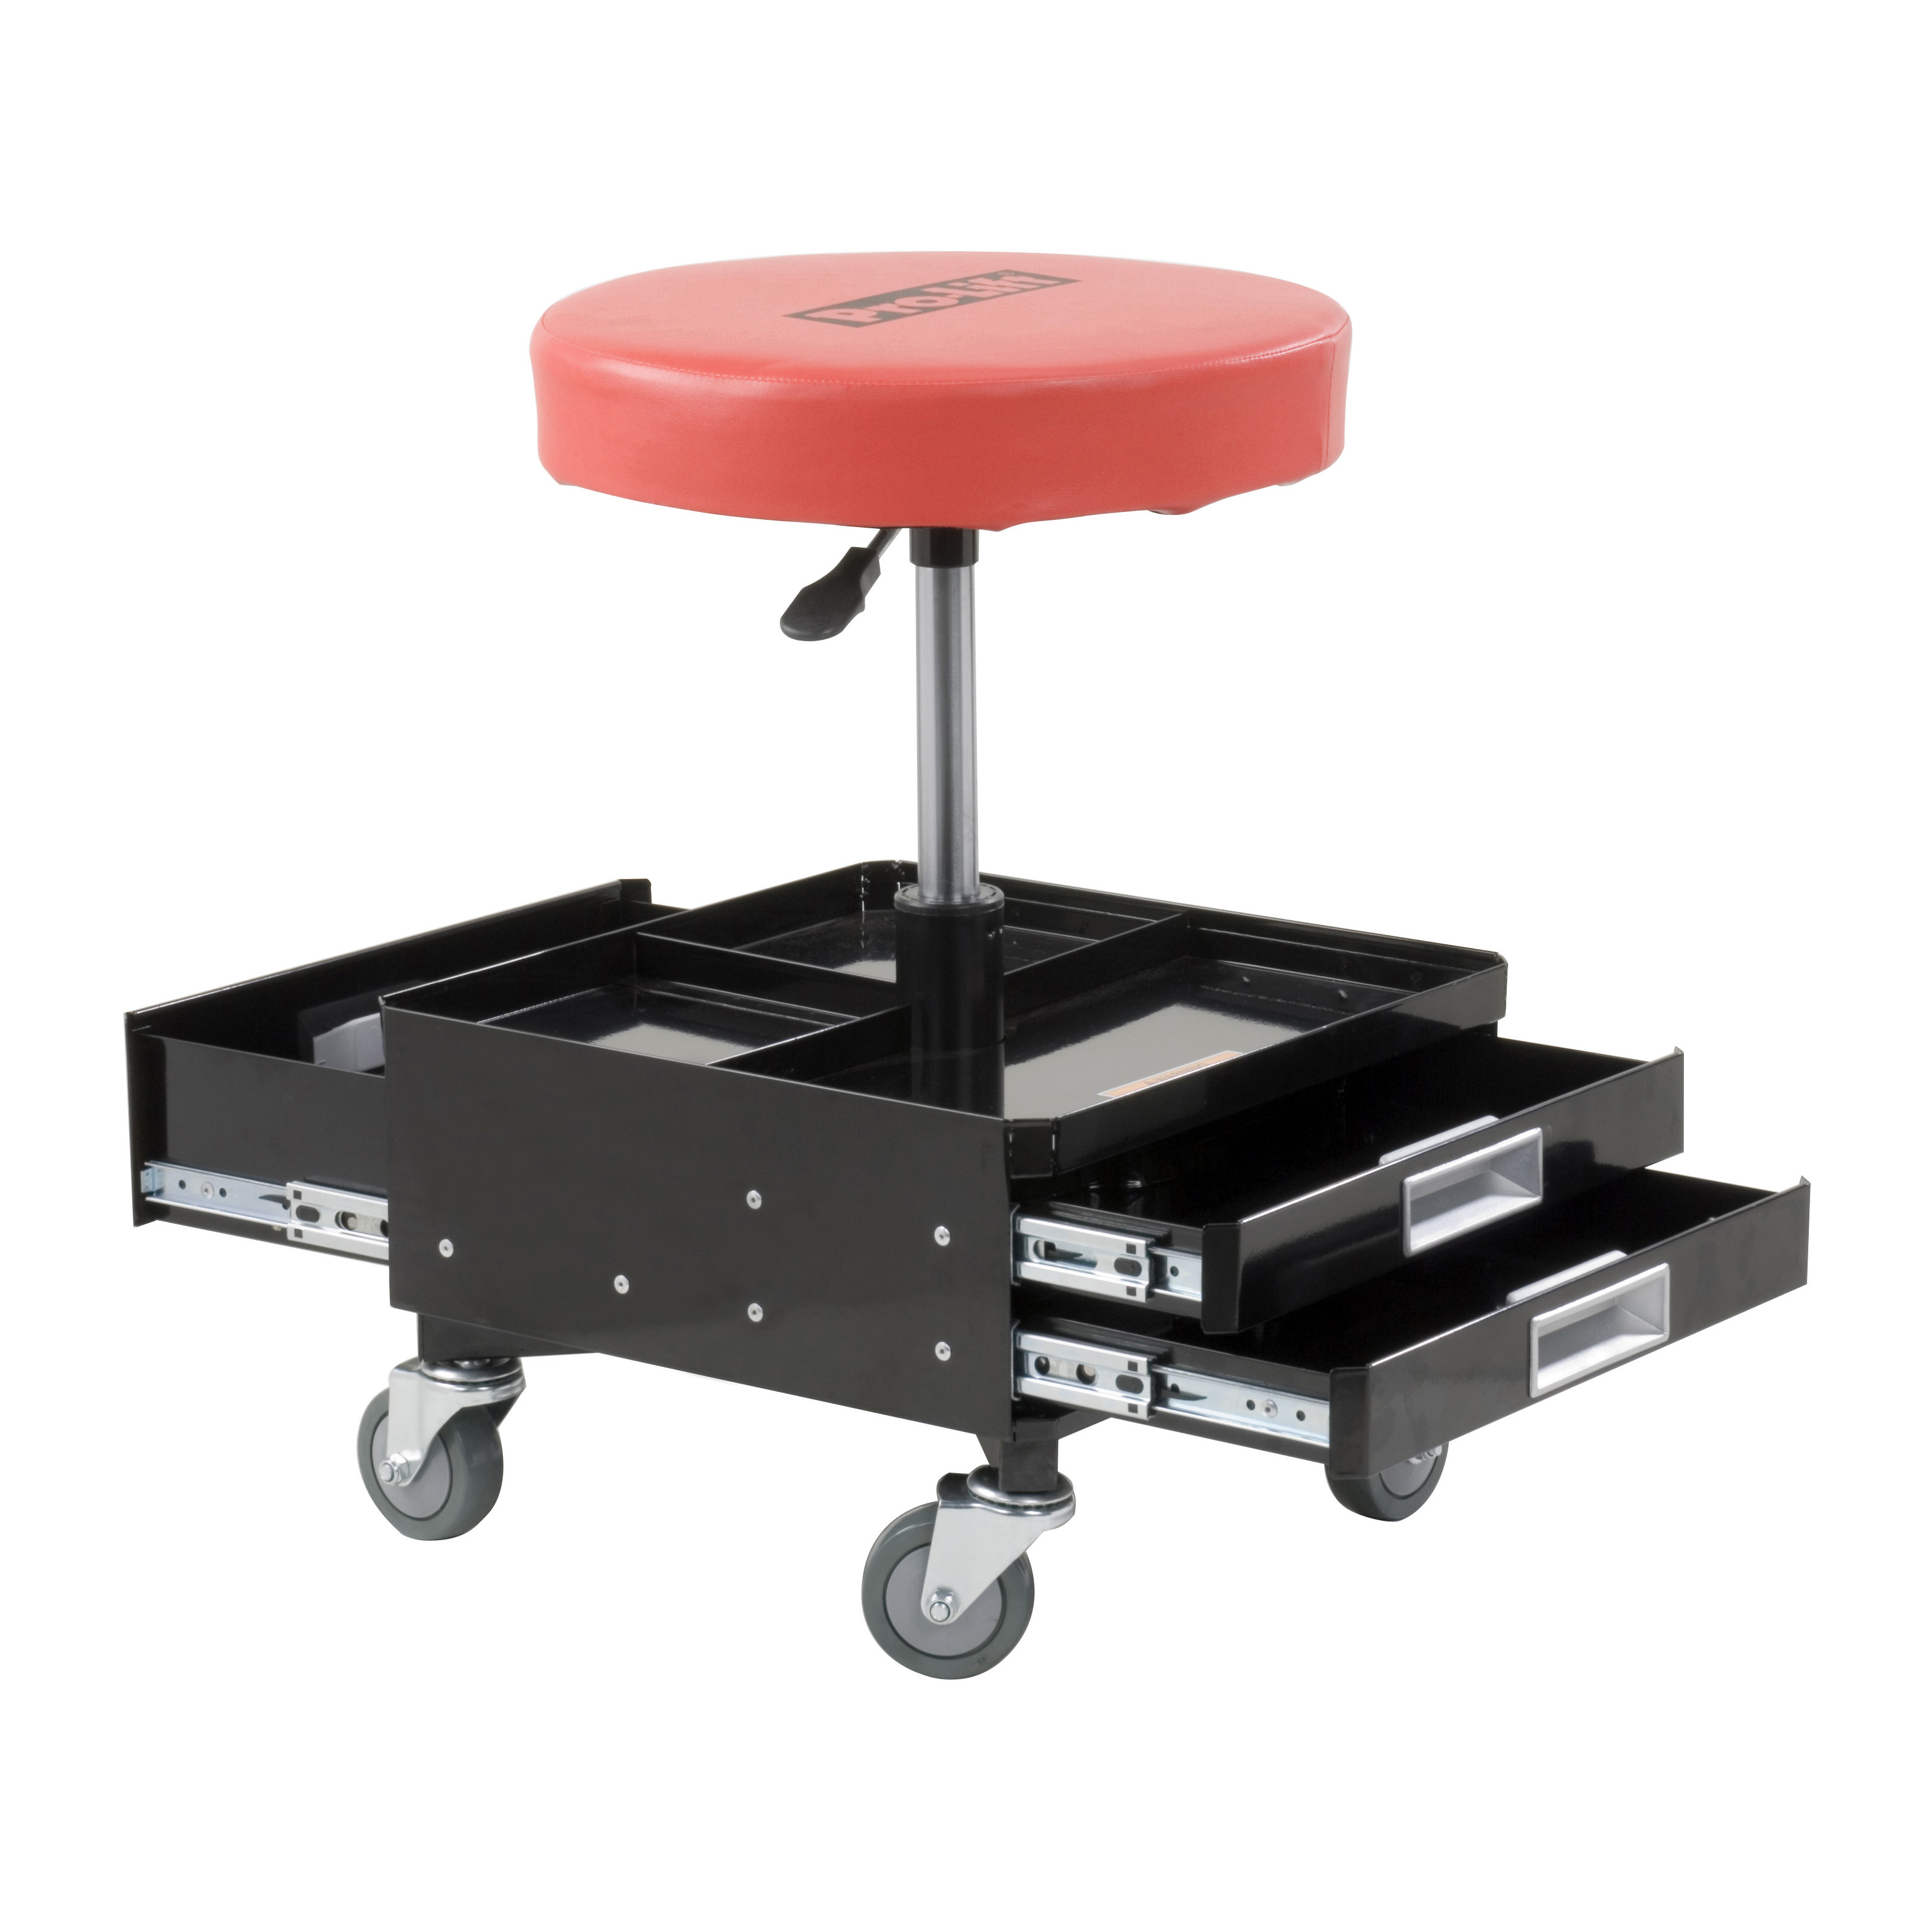 Pro Lift Pneumatic Chair With 3 Drawers Shop Stools At